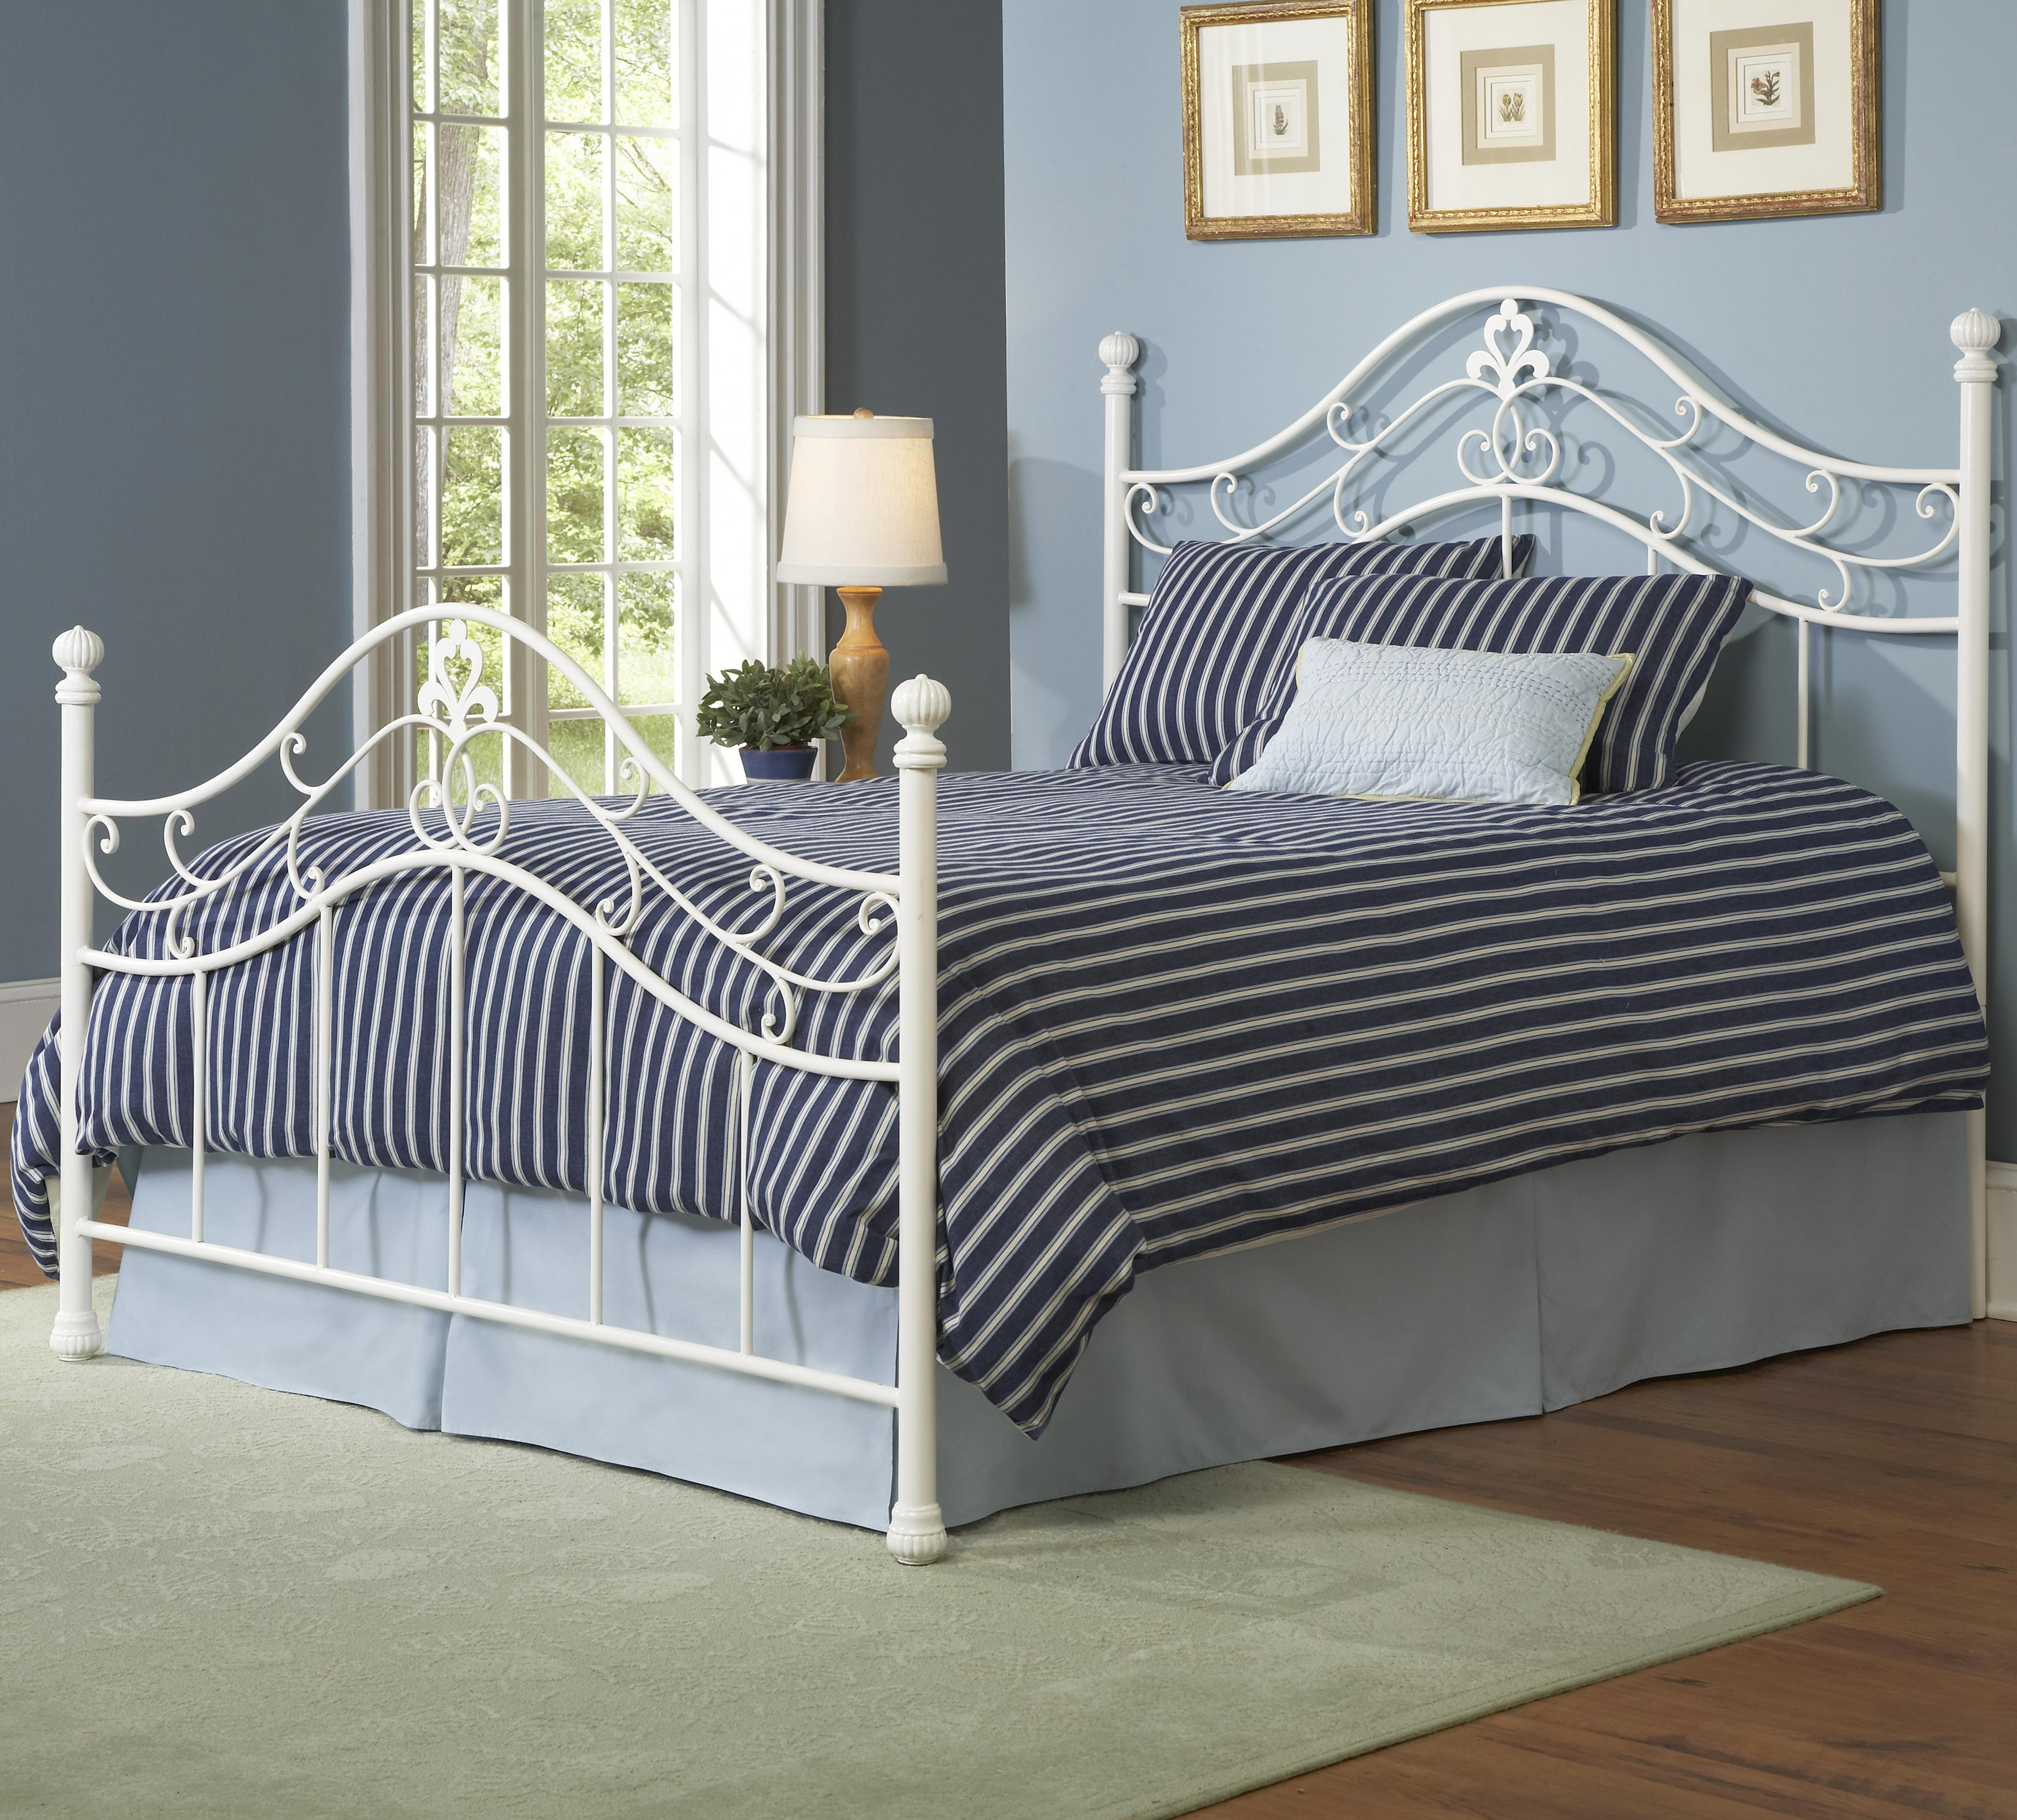 Largo Bedroom Furniture Queen Heartland Bed By Largo Wolf And Gardiner Wolf Furniture